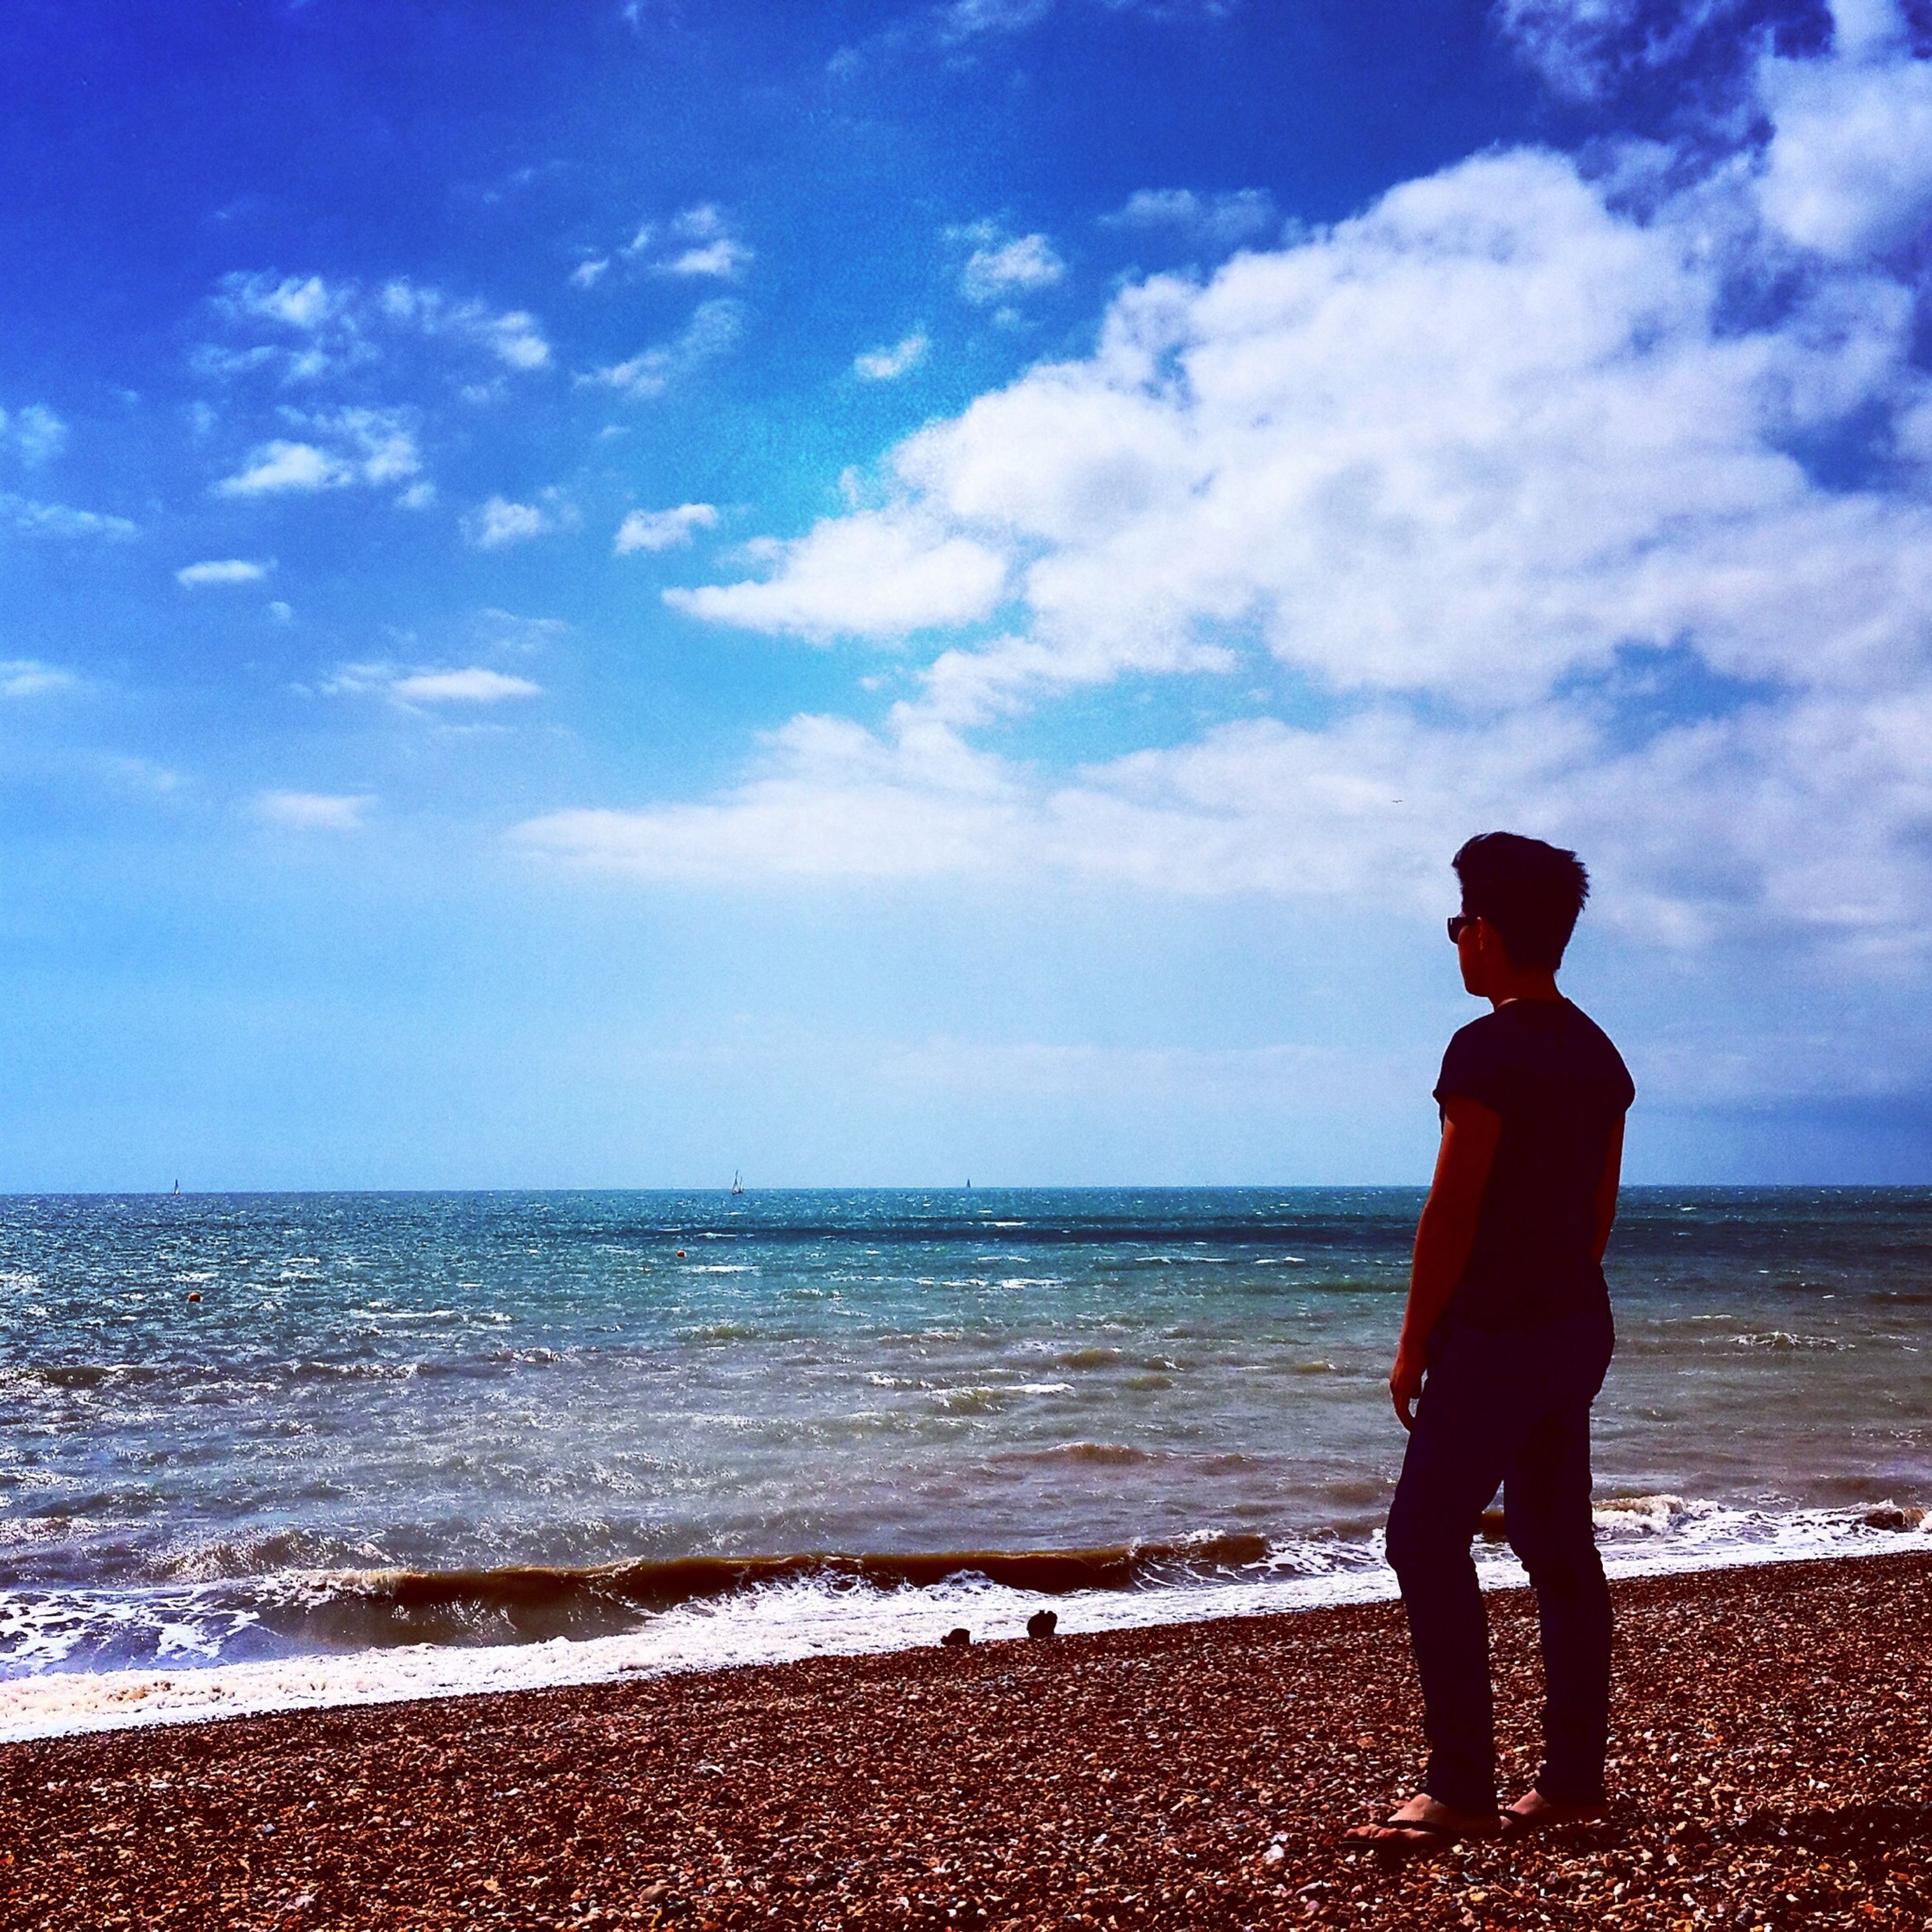 sea, beach, horizon over water, water, shore, sky, full length, standing, rear view, beauty in nature, tranquility, tranquil scene, leisure activity, scenics, lifestyles, cloud - sky, nature, sand